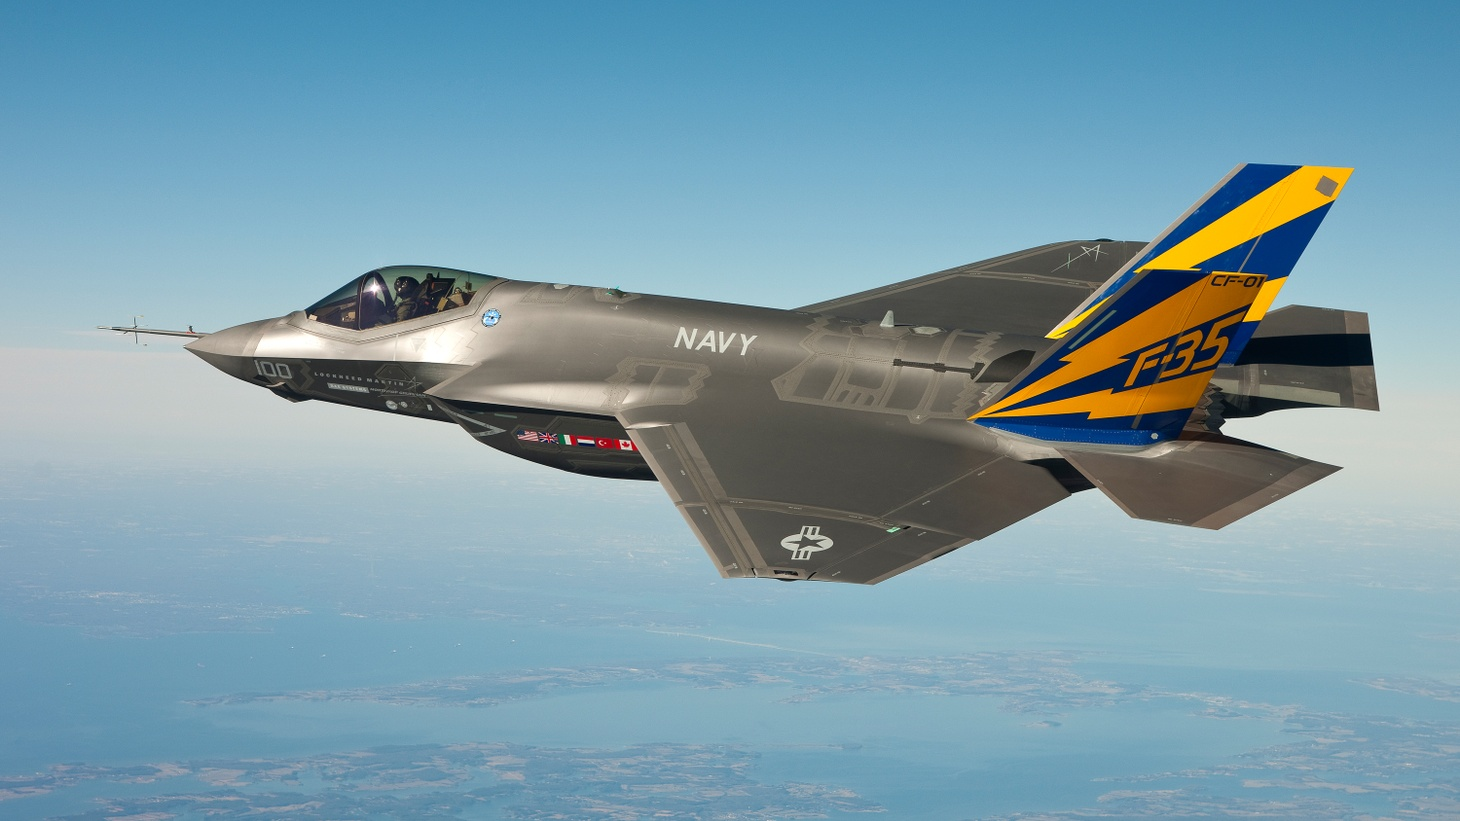 The F-35 fighter-bomber was grounded again this week — the most expensive weapons system in history is too dangerous to fly. Is the F-35 a high-tech requirement for future warfare, or a pork-barrel project that will be obsolete when it finally gets off the ground?